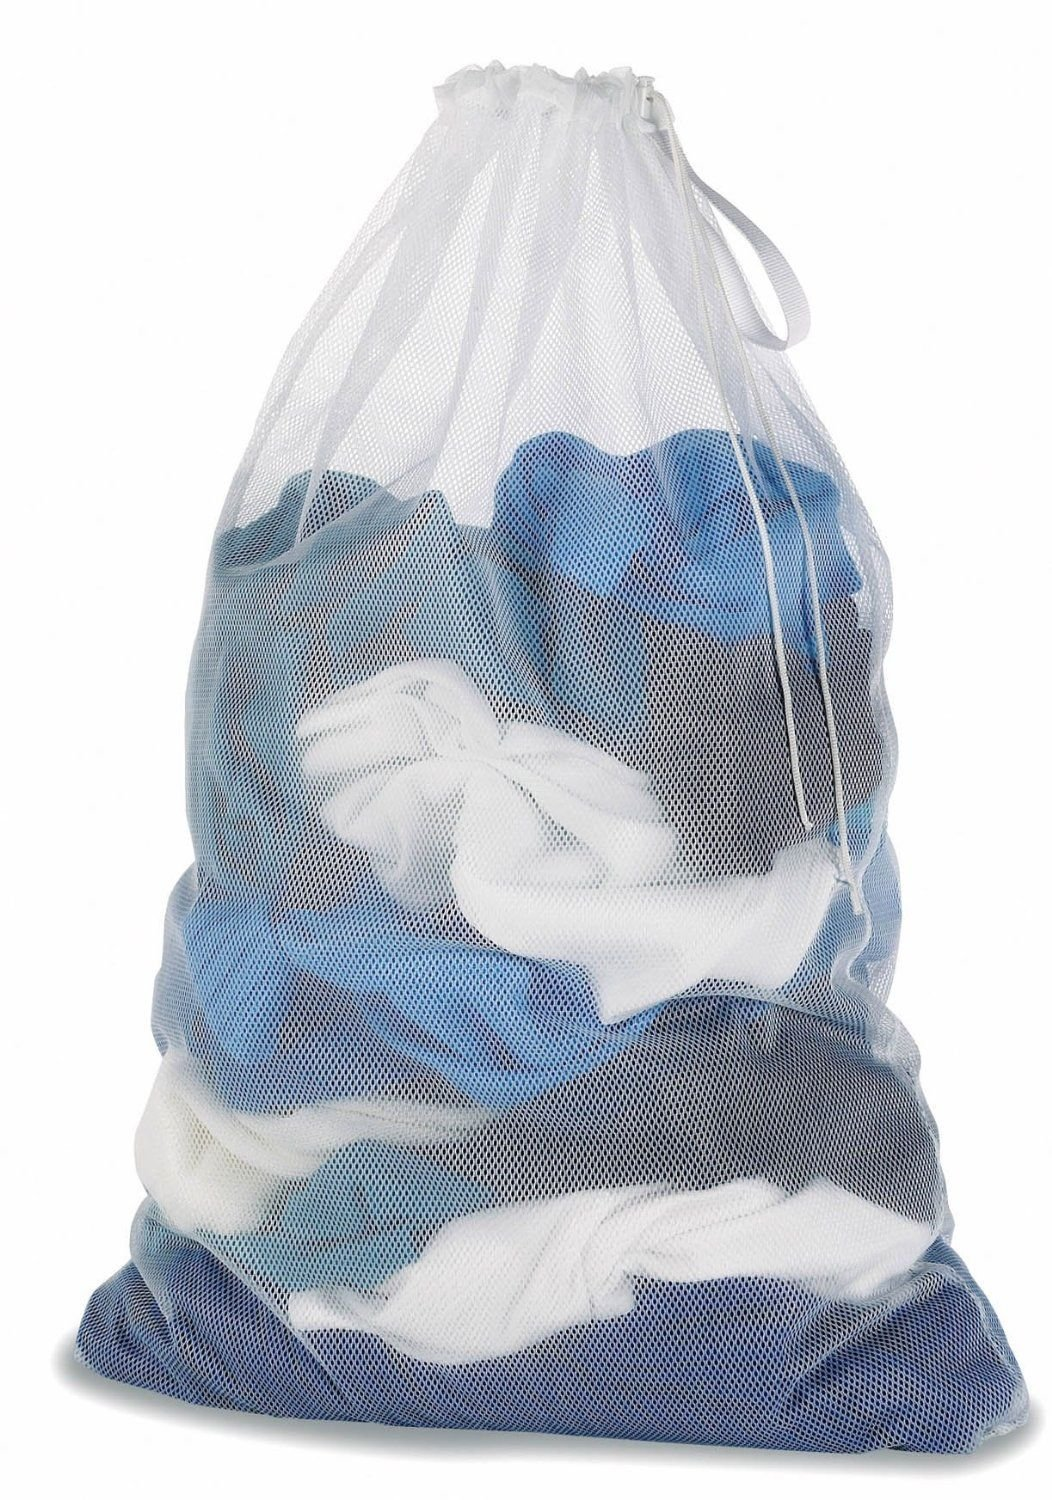 Generic YC-US2-151027-123 <8&24881> lyester4''x36'' Dorm Clothes 24''x36'' Dorm White Mesh College Storage Laundry Bag Organizer Polyester White Mesh